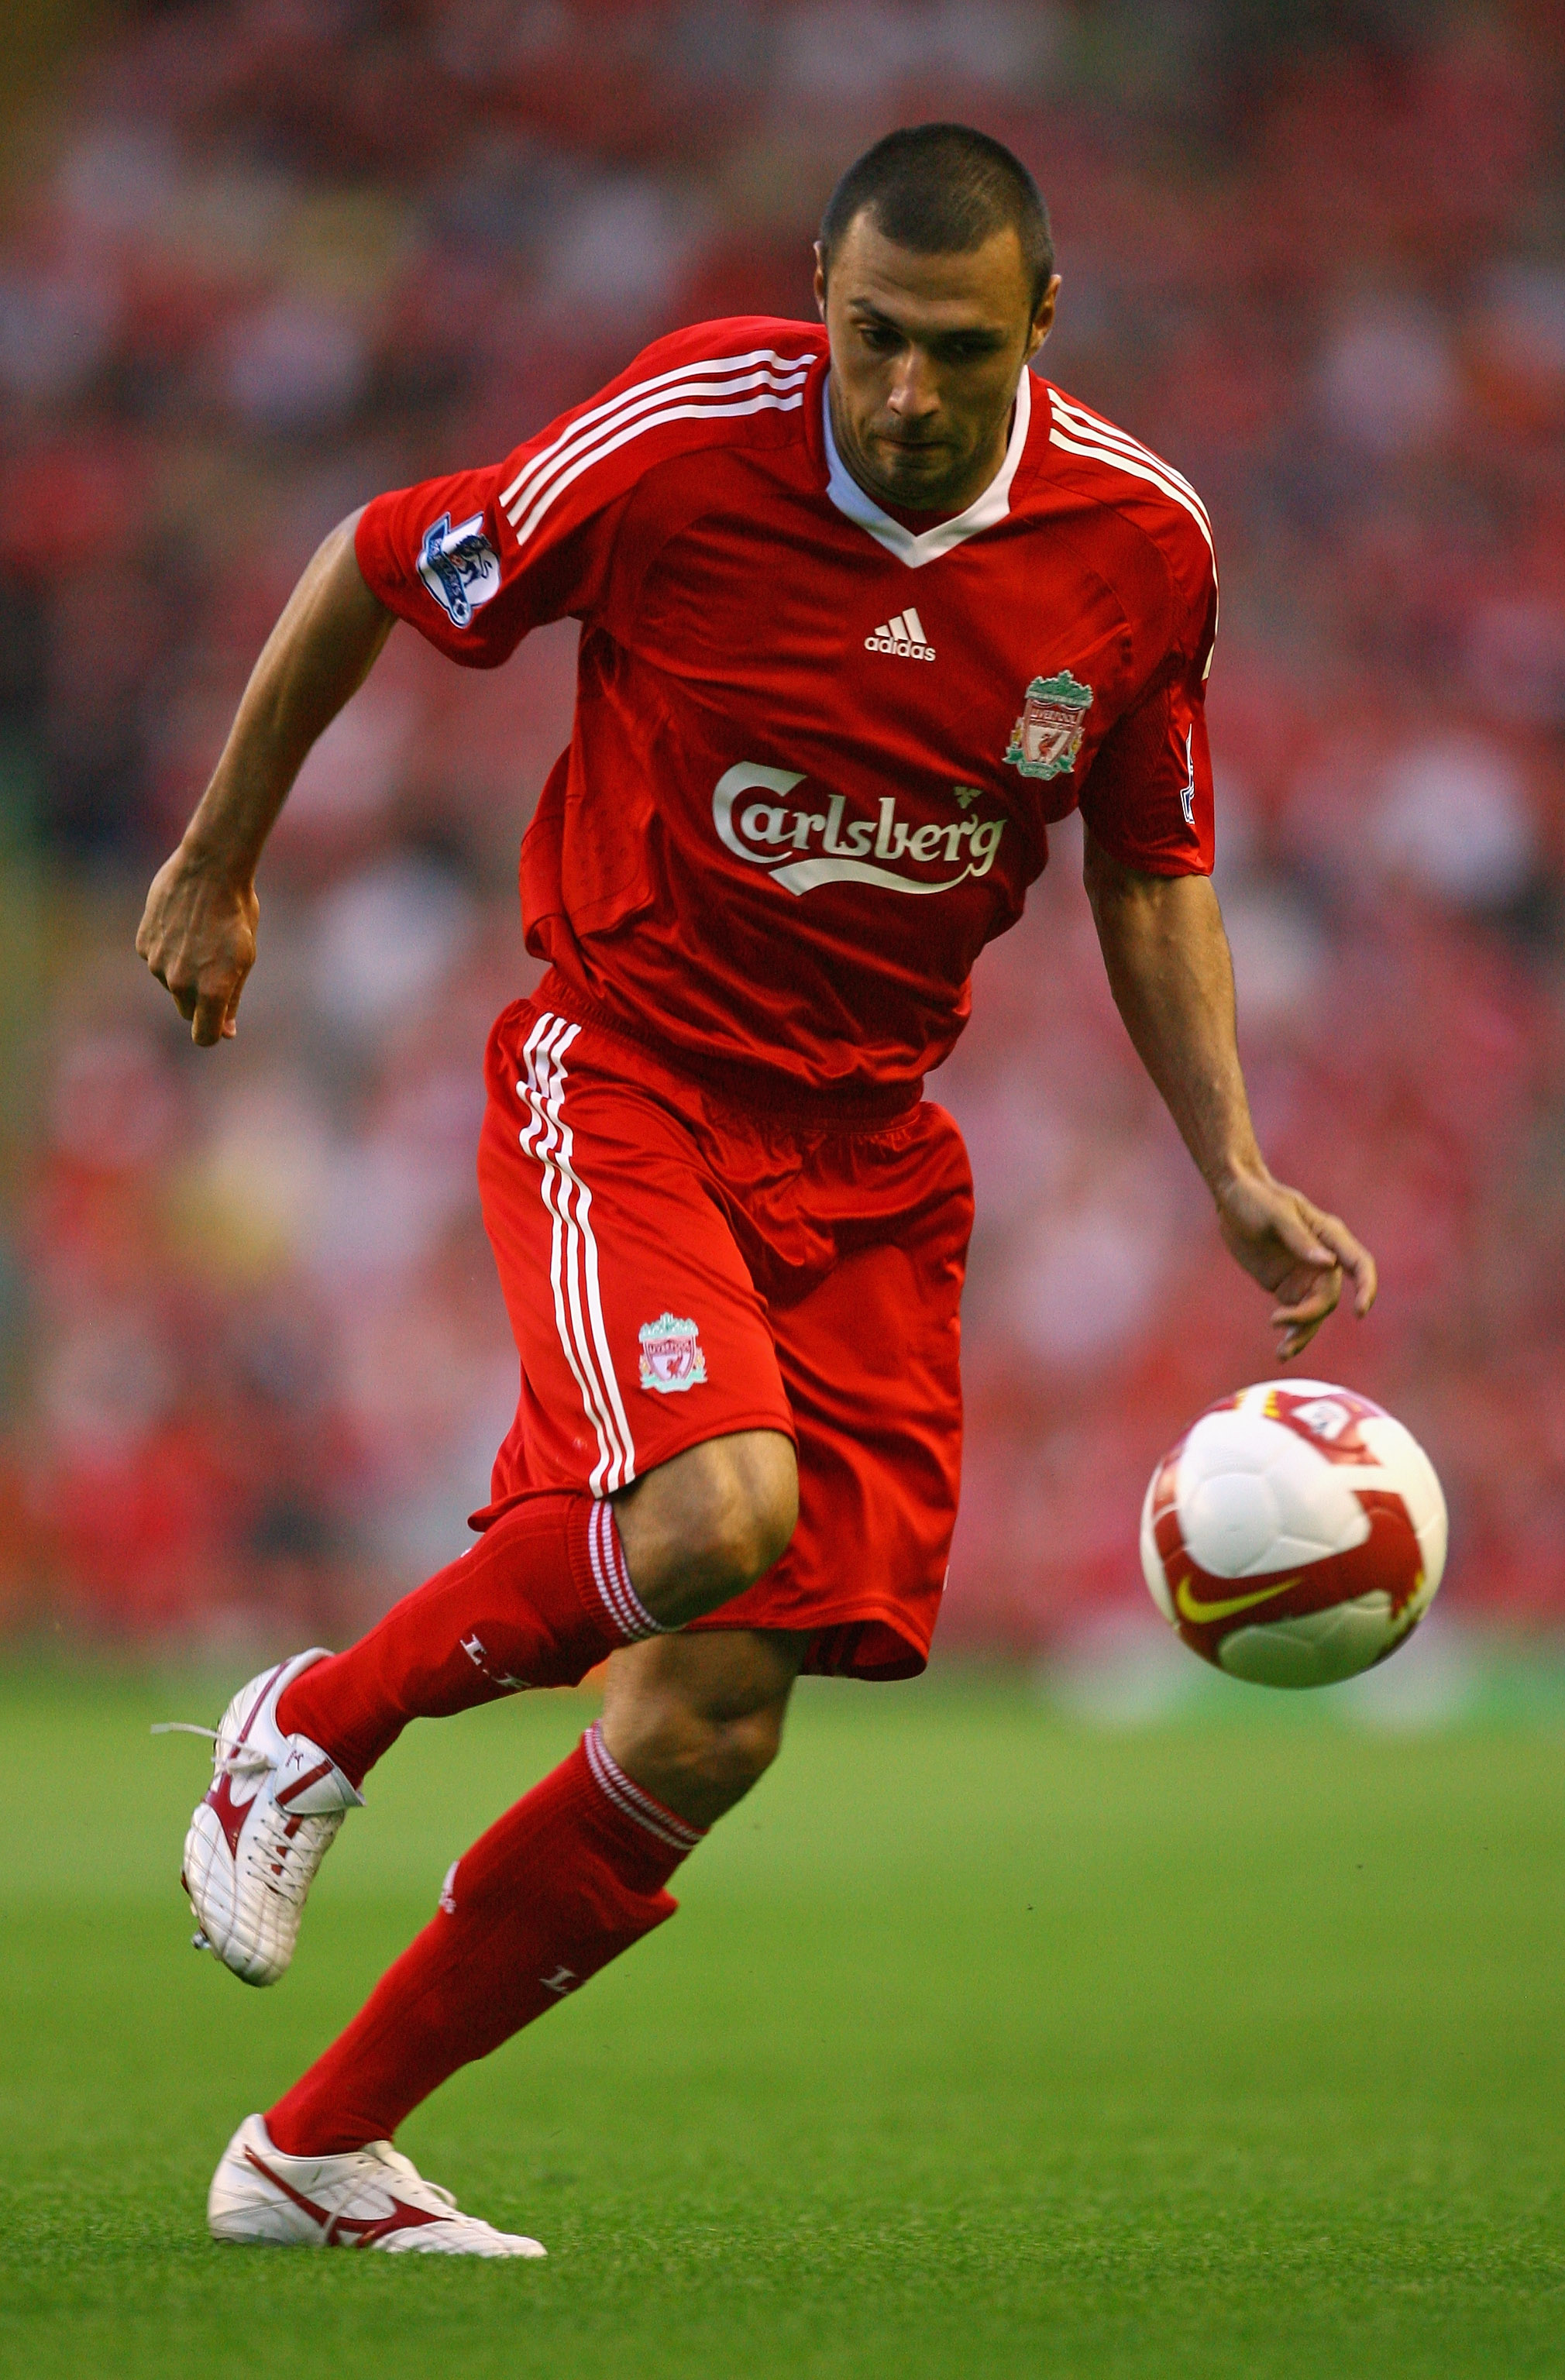 LIVERPOOL, UNITED KINGDOM - AUGUST 08:  Andrea Dossena of Liverpool during the pre season friendly match between Liverpool and Lazio at Anfield on August 8, 2008 in Liverpool, England.  (Photo by Alex Livesey/Getty Images)